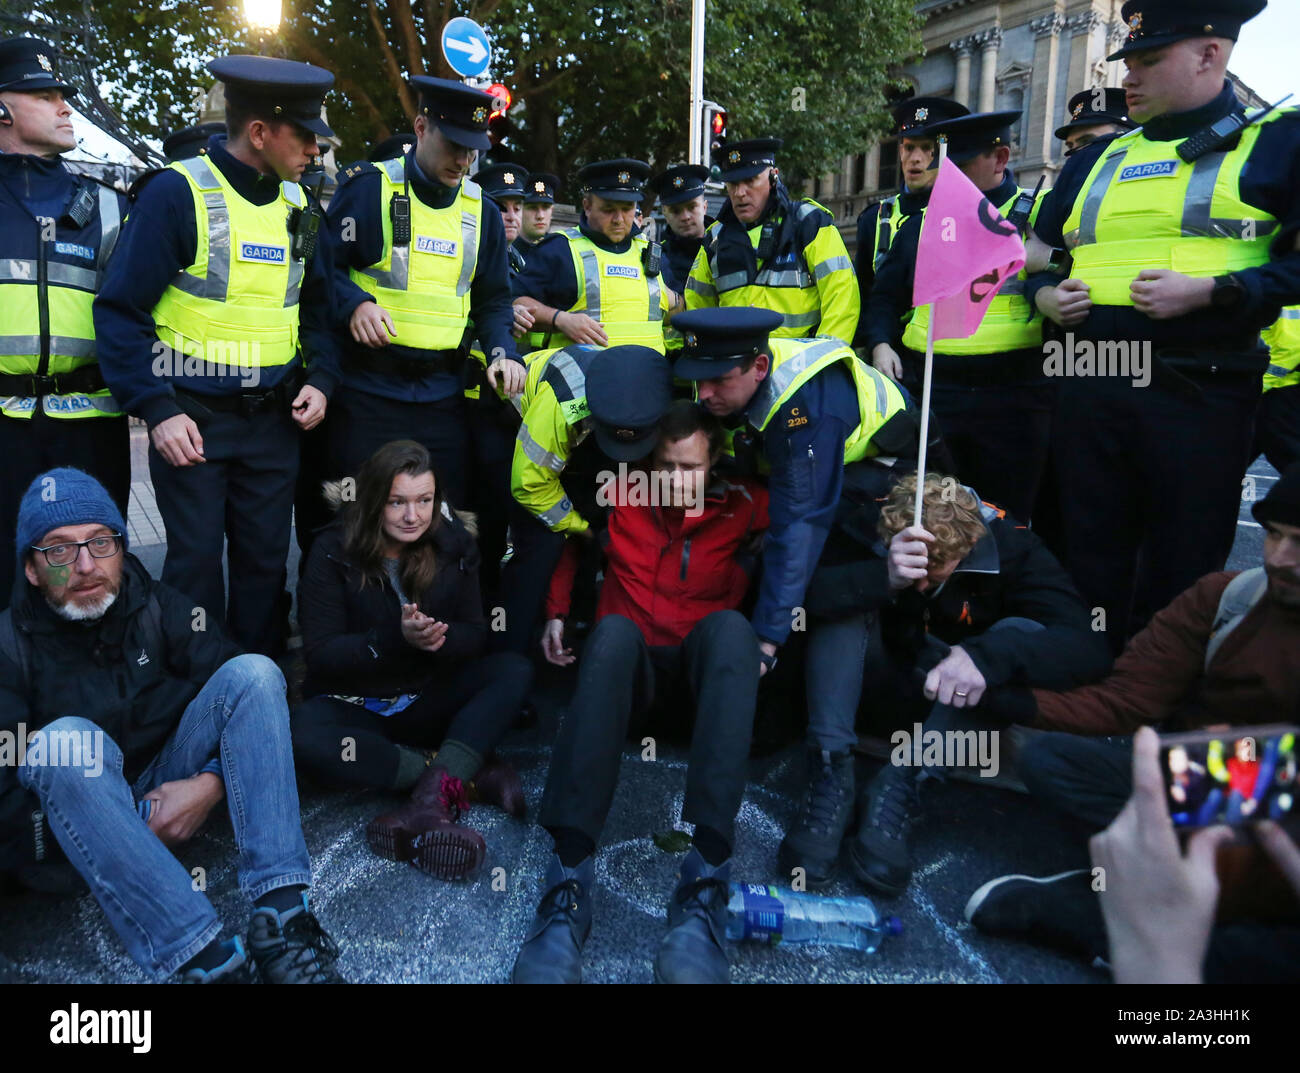 08/10/2019 Budget Day 2020 protests. Pictured, members of An Garda Siochana begin to arrest members of Extinction Rebellion who are protesting outside the Dail on Leinster Street. Photograph: Sam Boal / RollingNews.ie Stock Photo